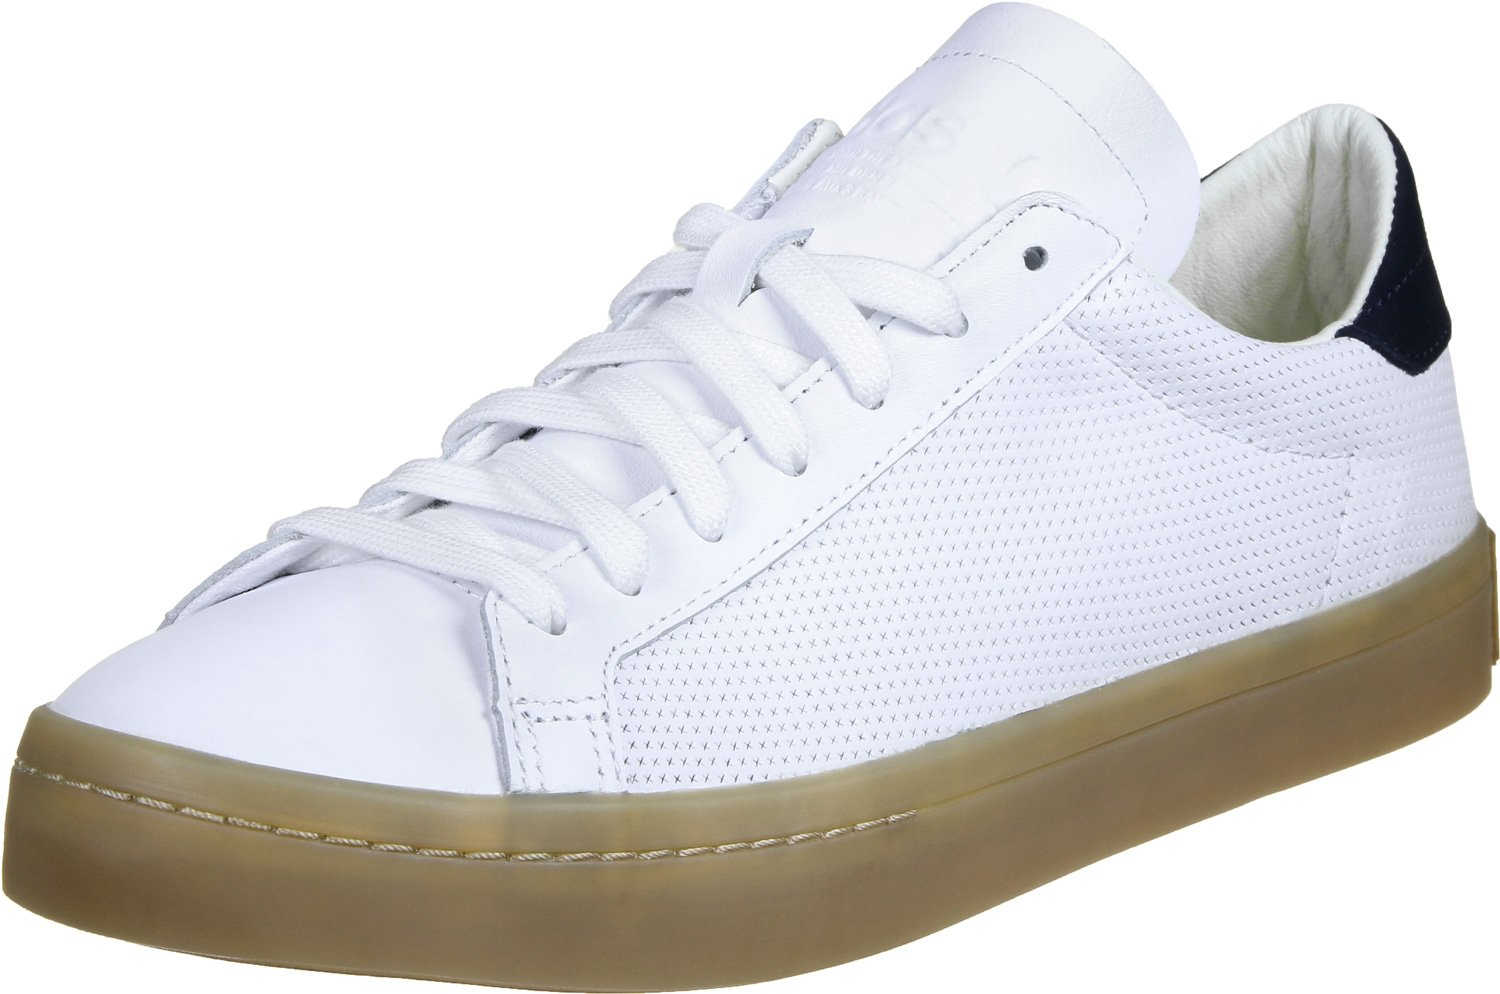 adidas adidas adidas Herren Courtvantage Basketballschuhe White/Brown 671581